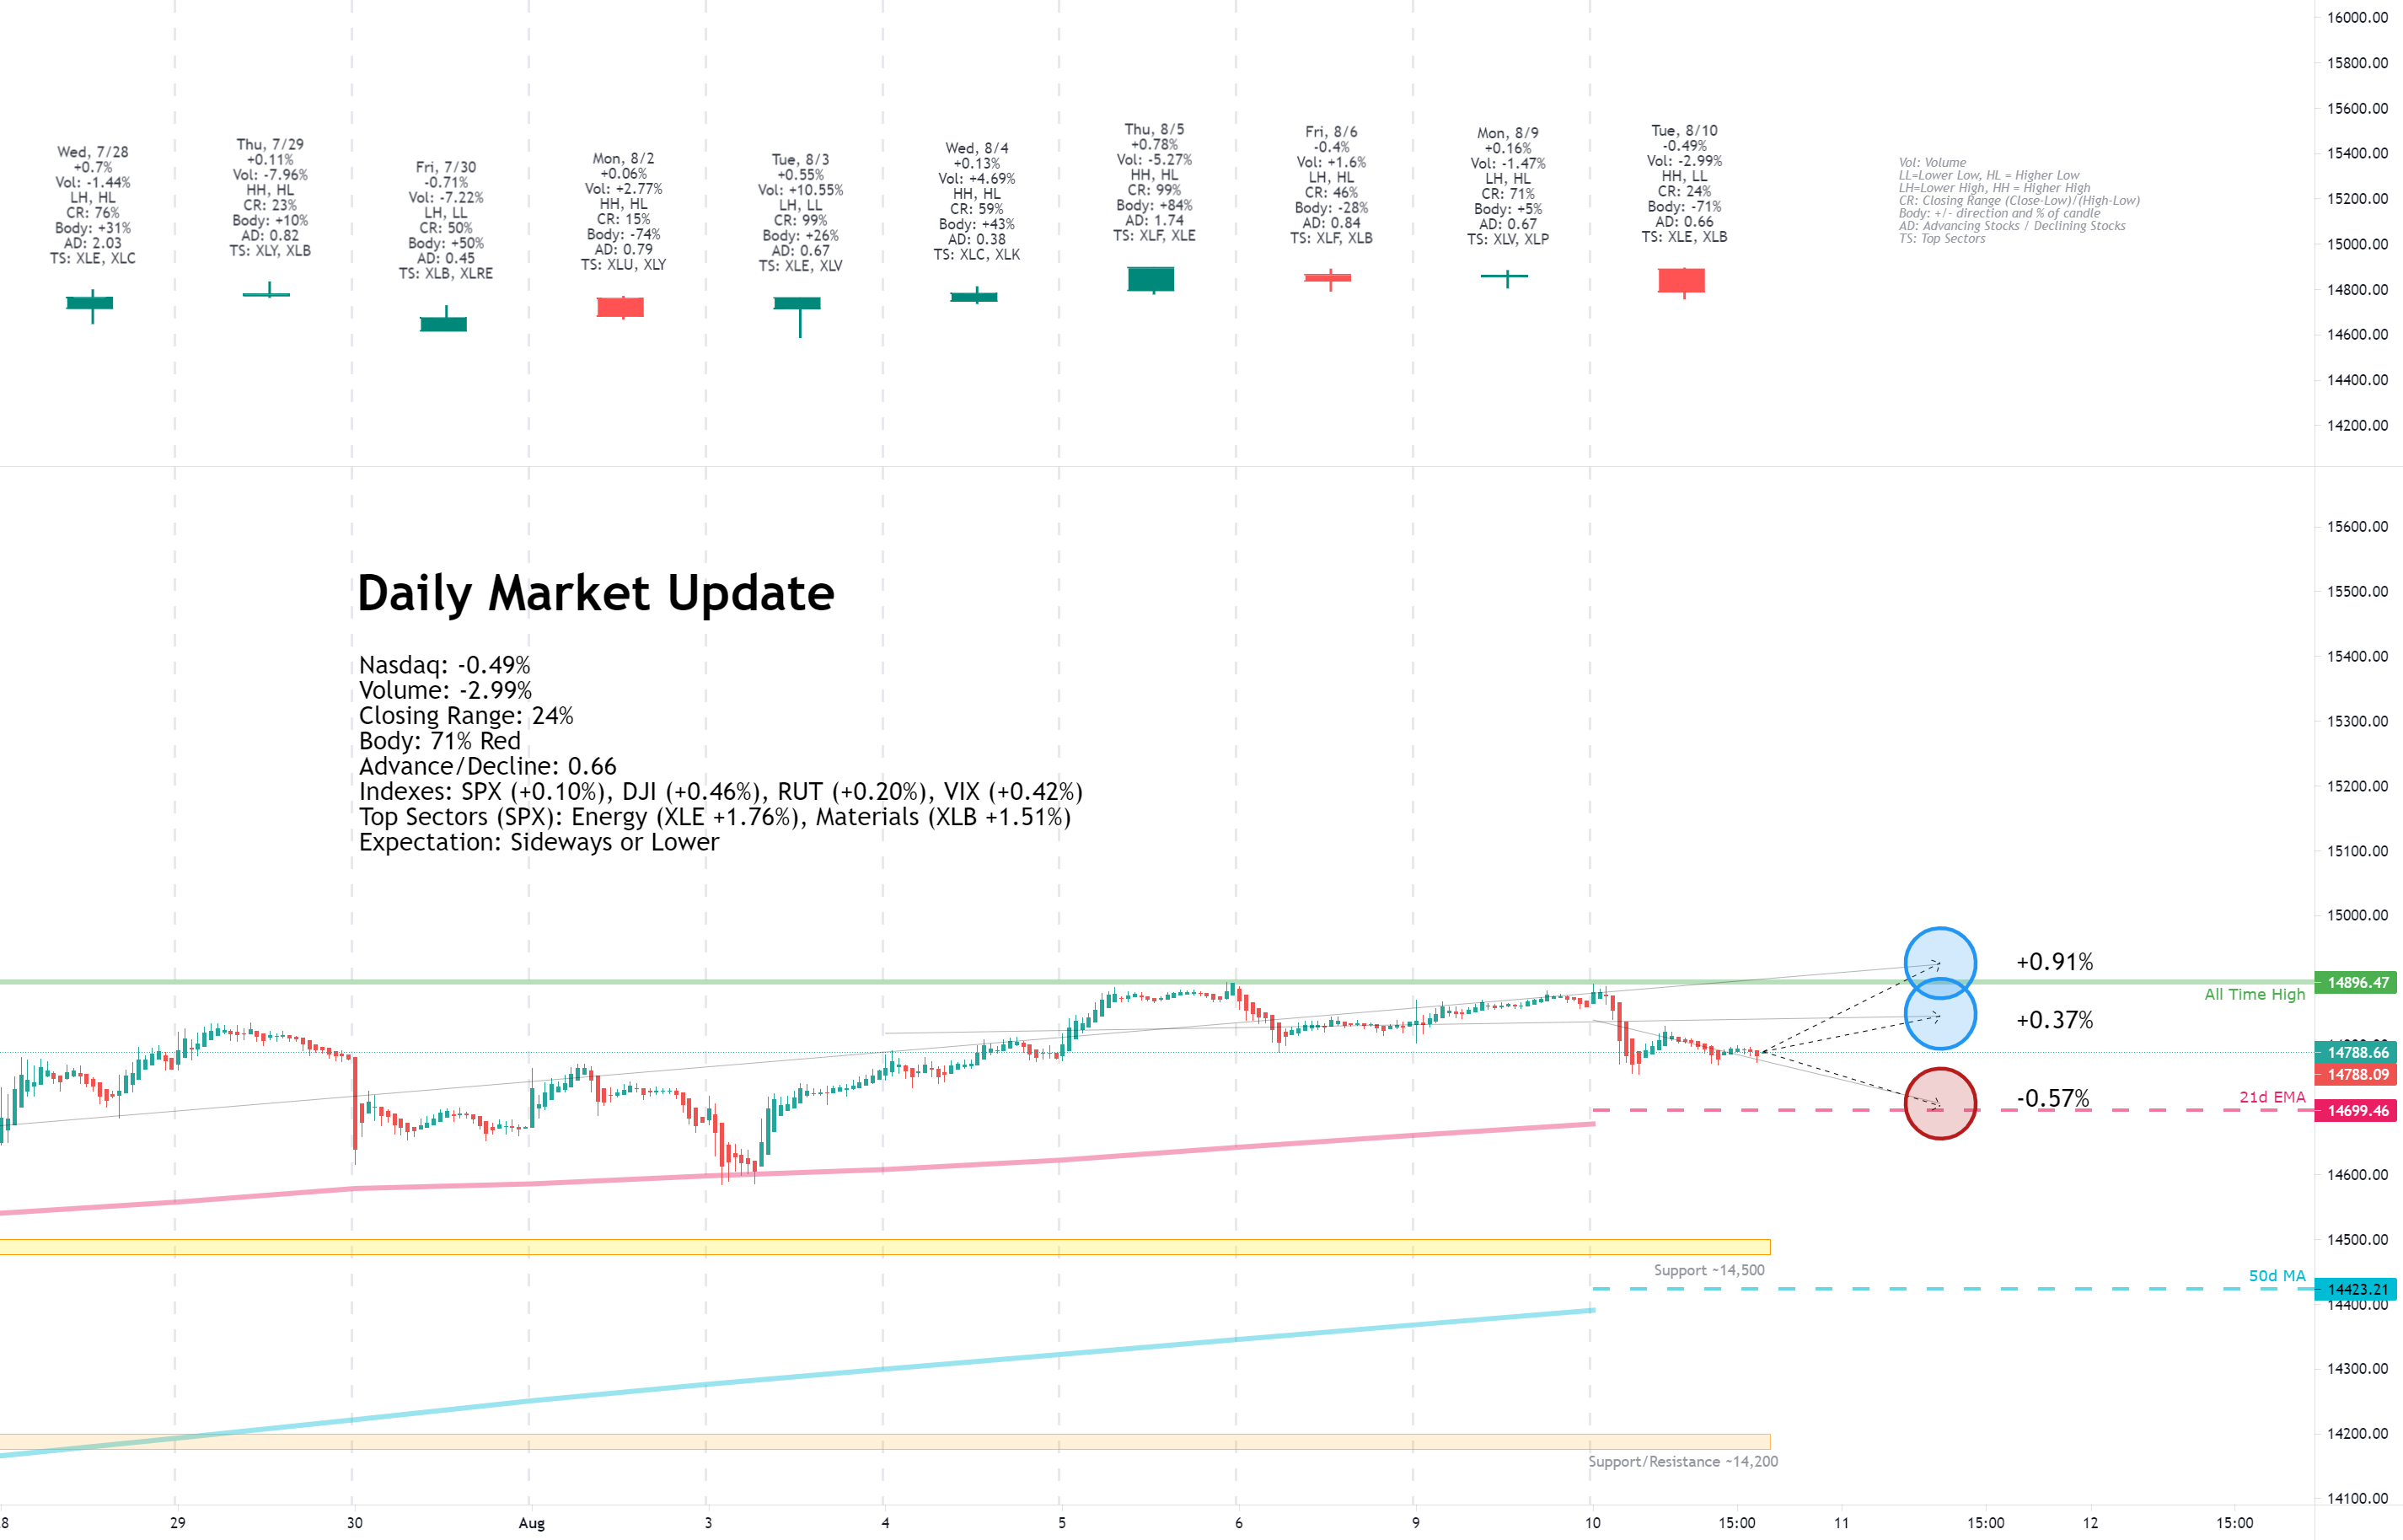 Daily Market Update for 8/10